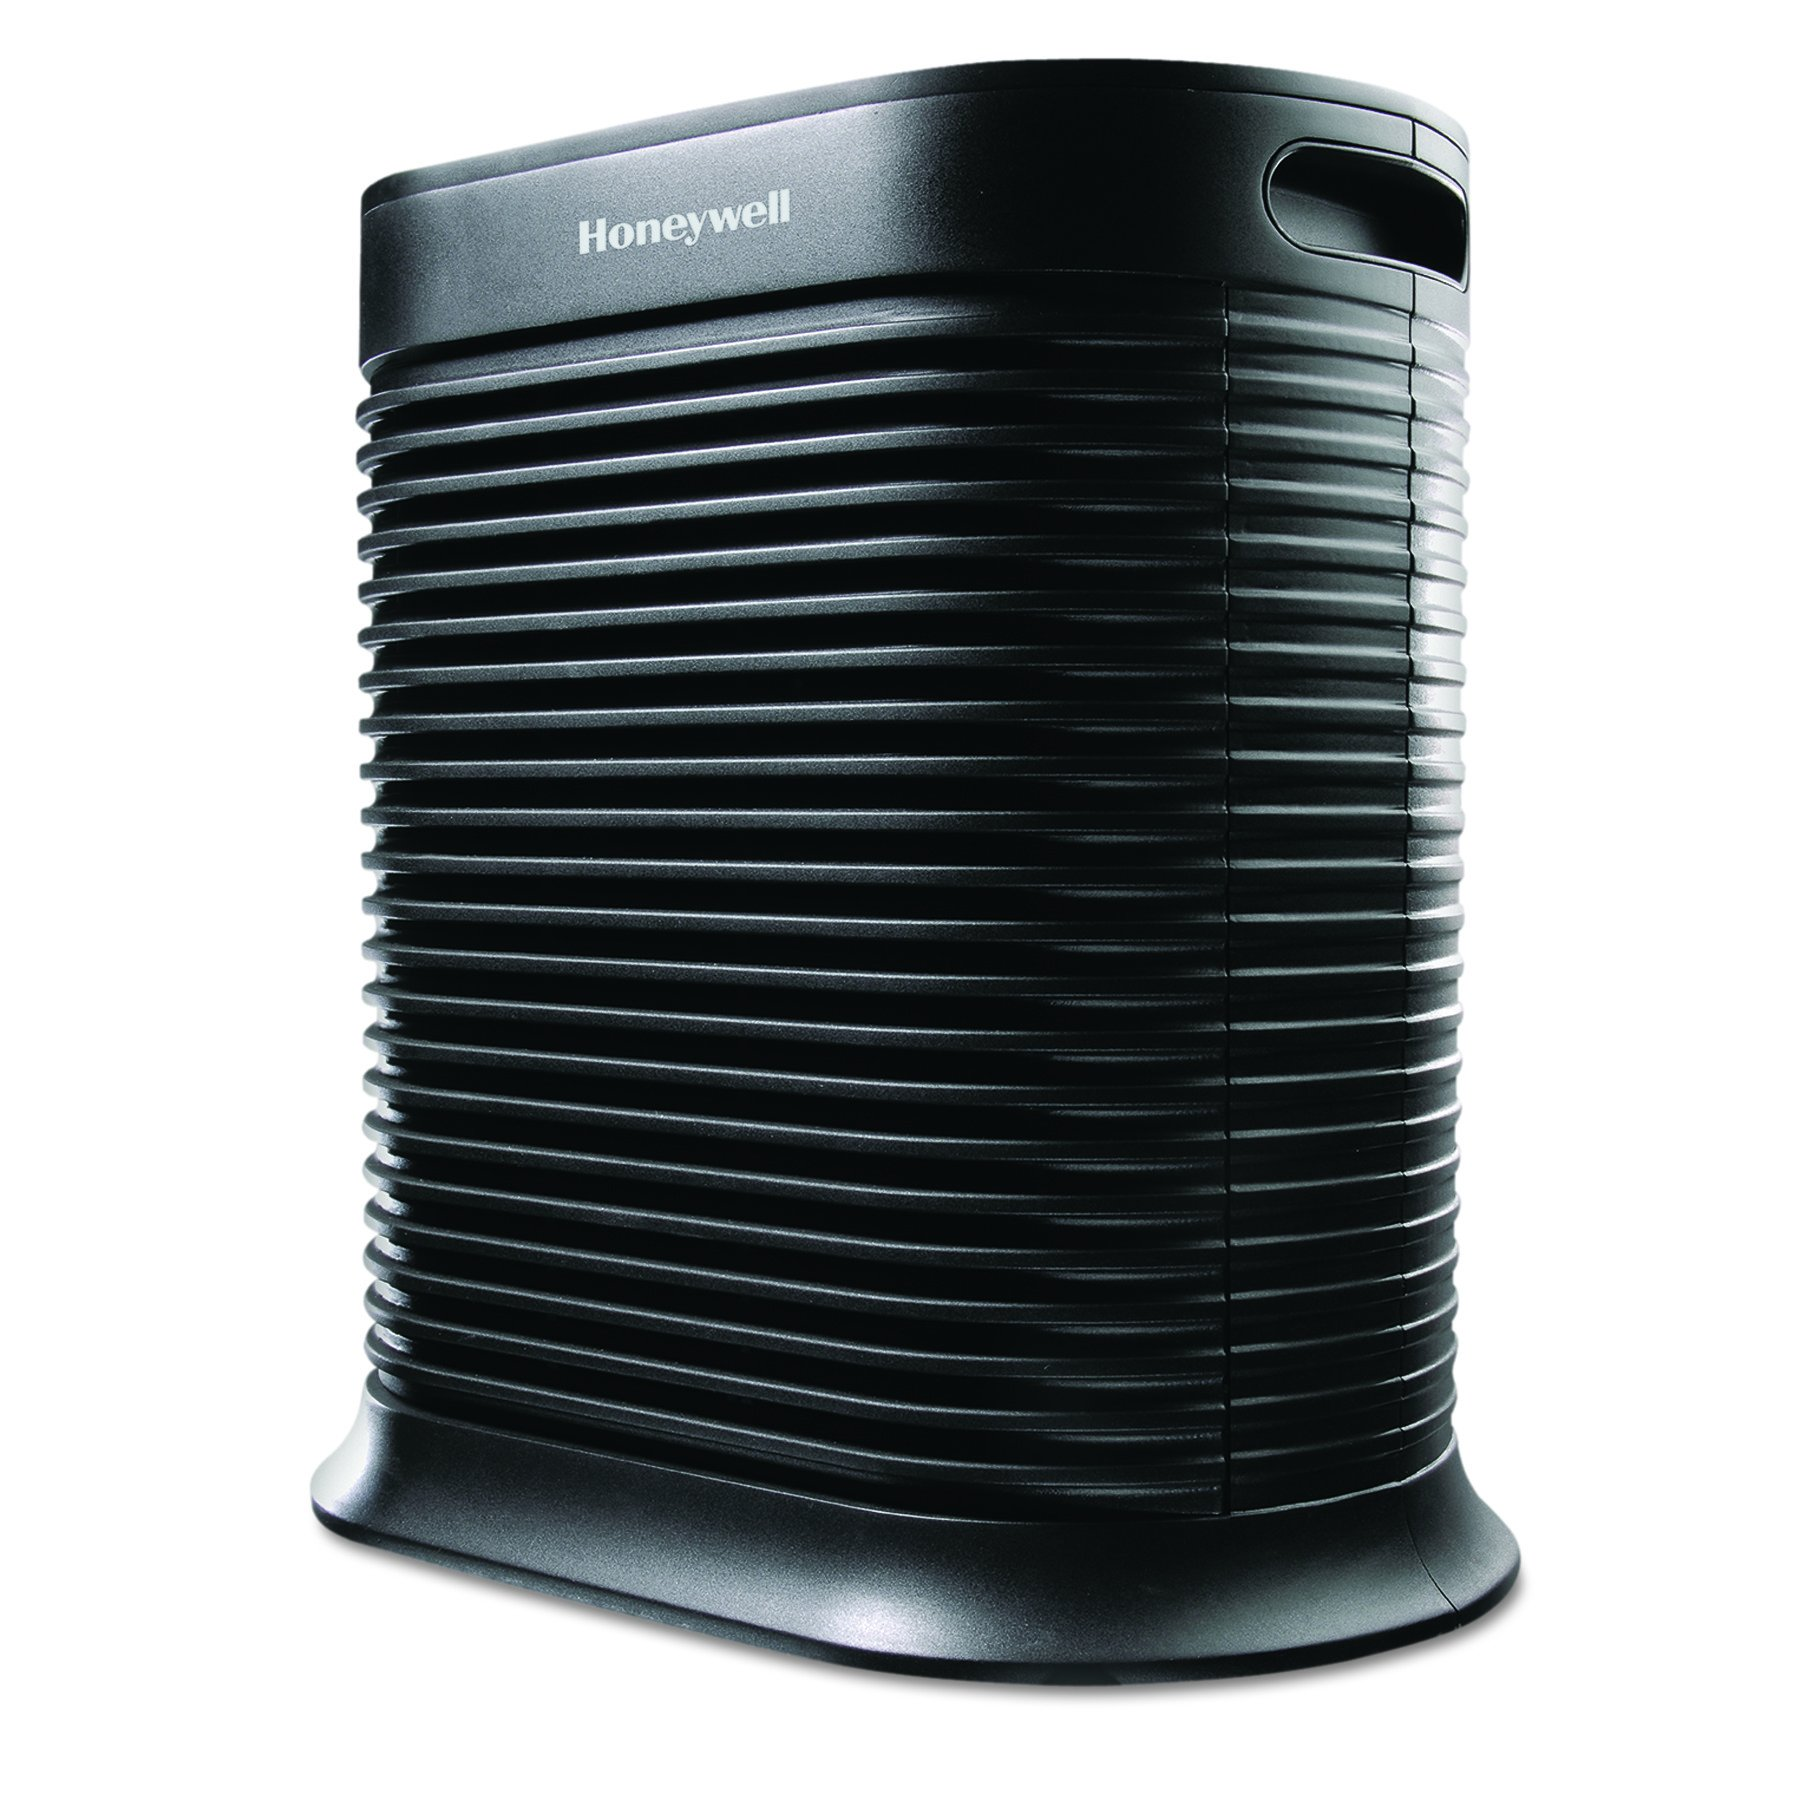 Honeywell True HEPA Allergen Remover, 465 sq. Ft, HPA300, Extra-Large Room, Black by Honeywell